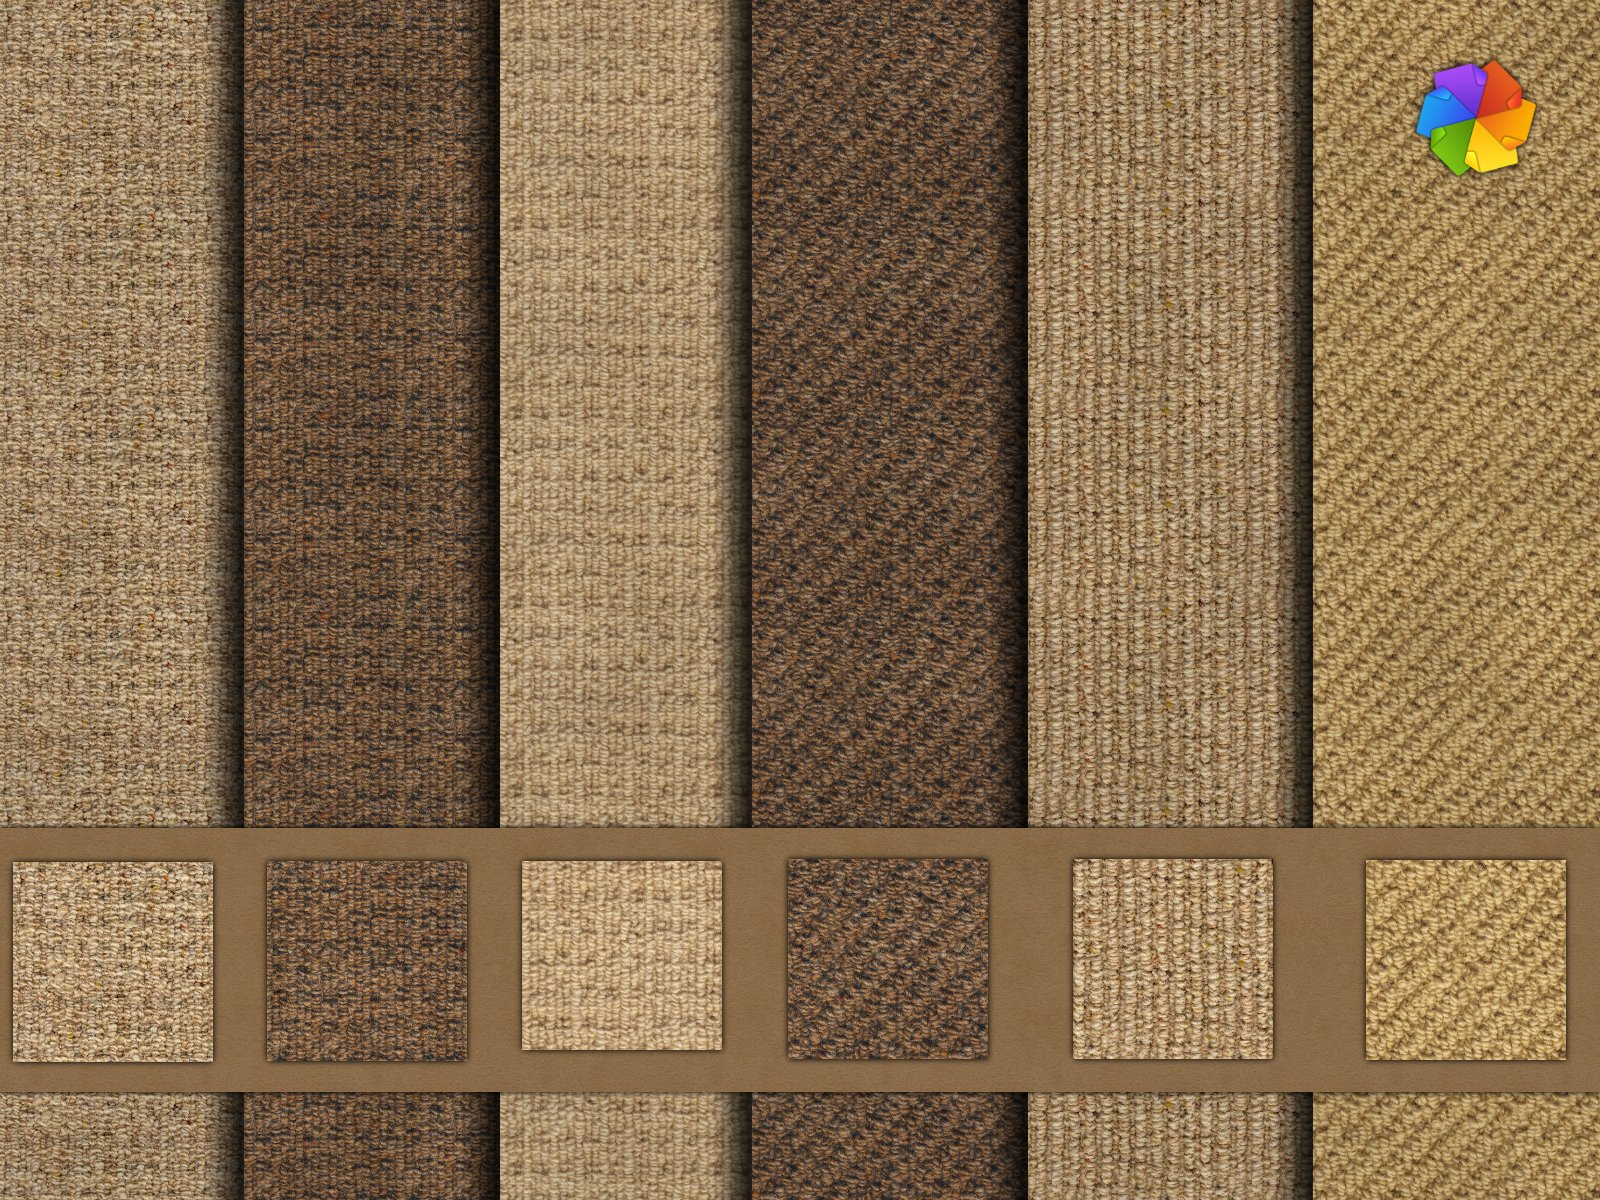 Free high resolution carpet textures by plaintextures on for Carpet texture high resolution